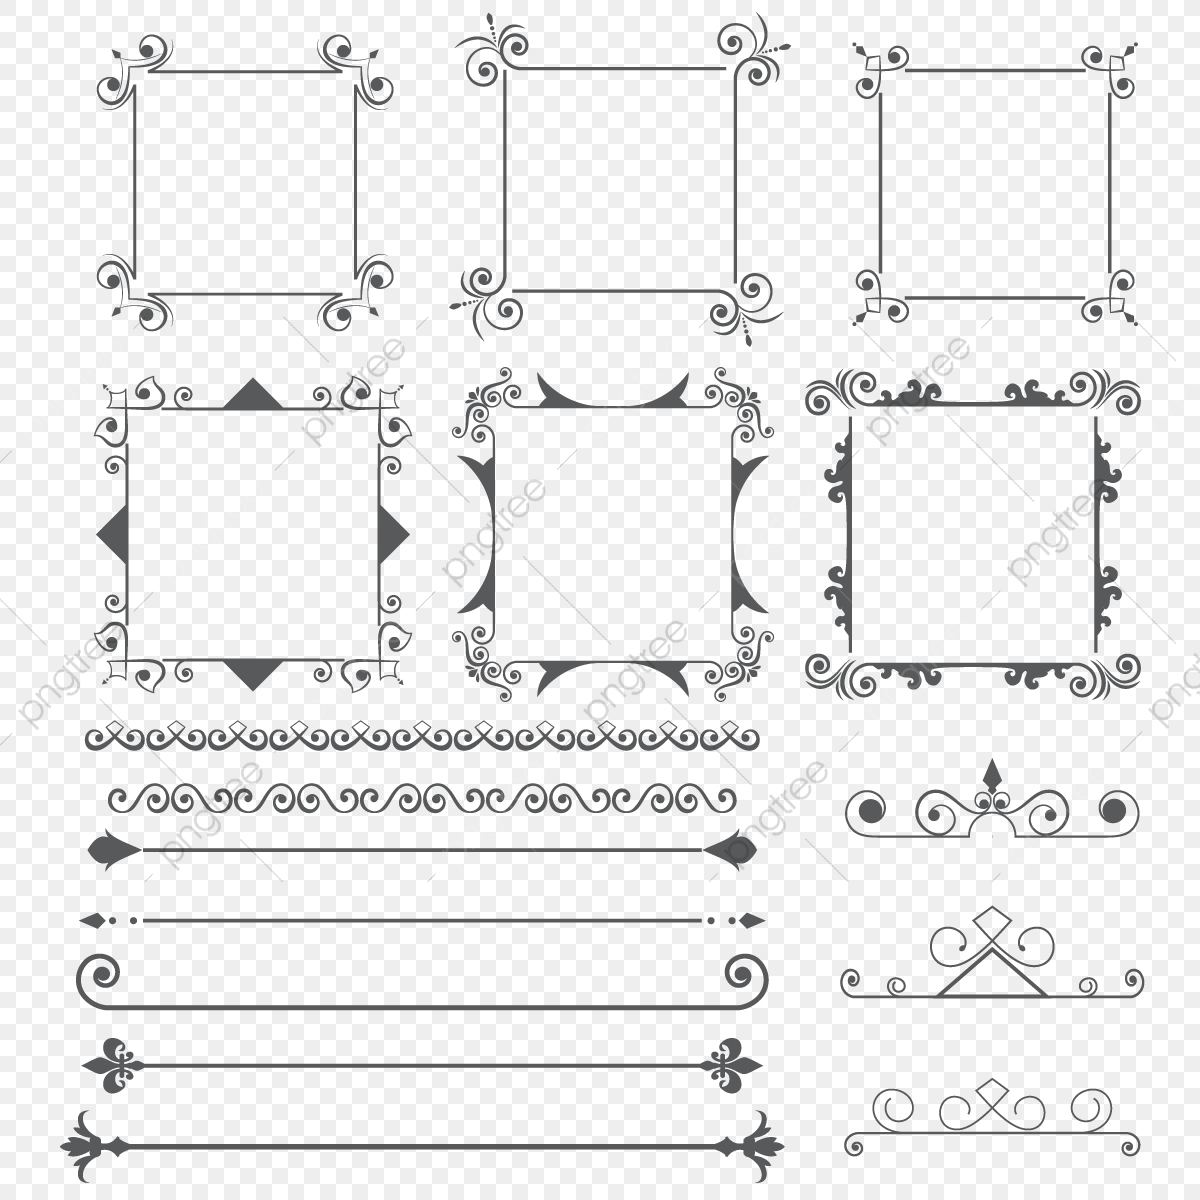 Ornament Frame And Dividers Design Elements, Ornament, Swirl.